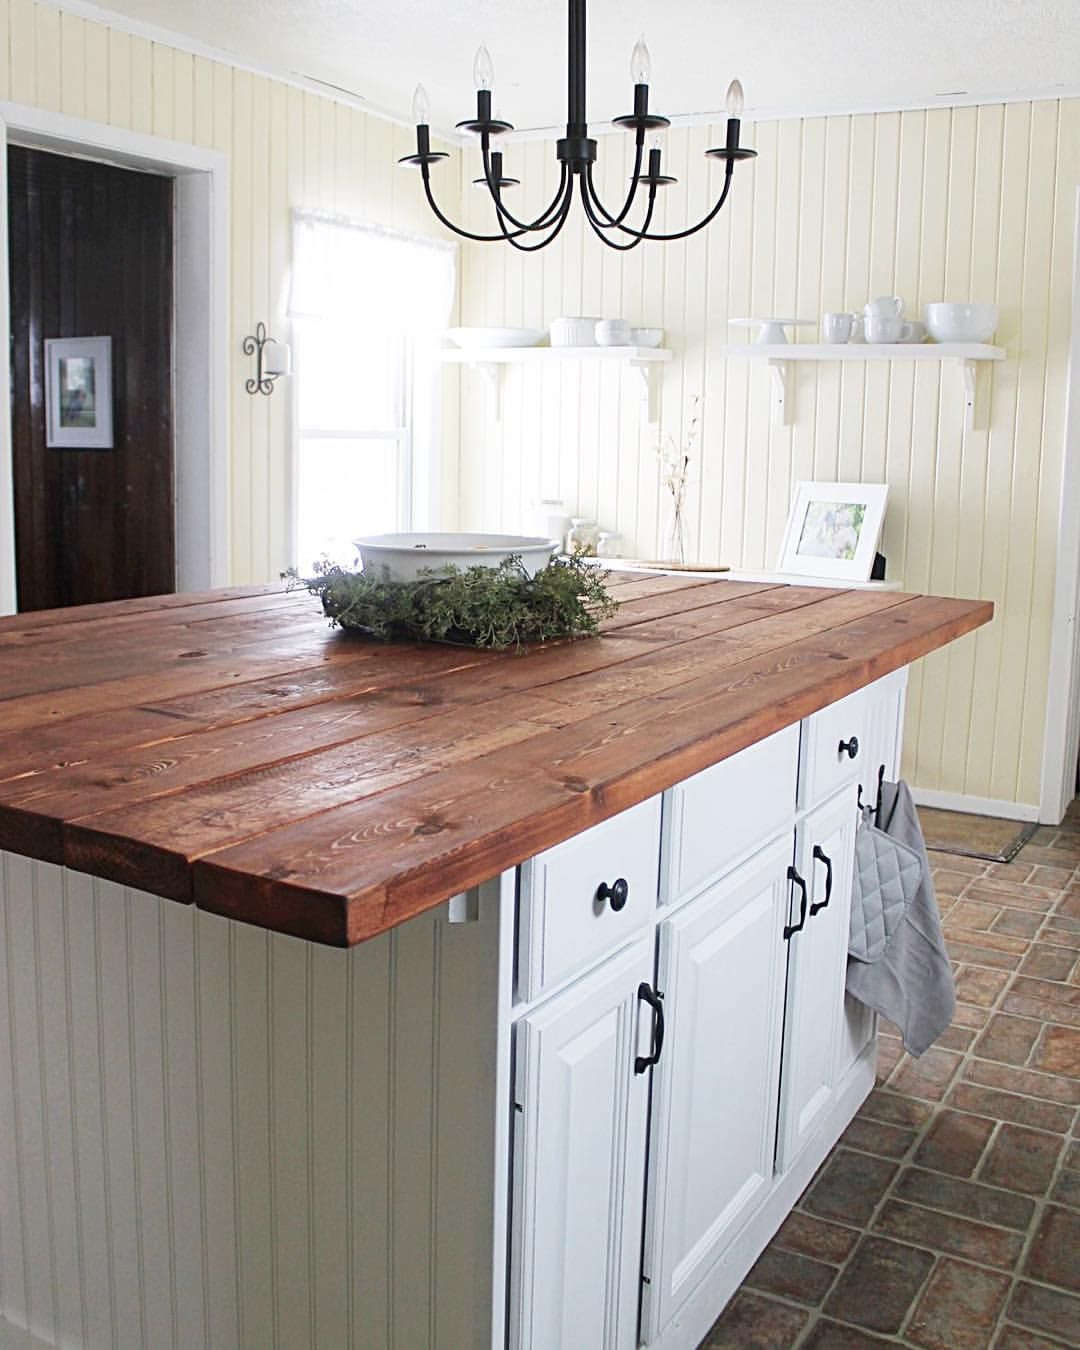 Mismatched Kitchen Cabinets: We Took 2 Mismatched Junk Cabinets And Fashioned Them